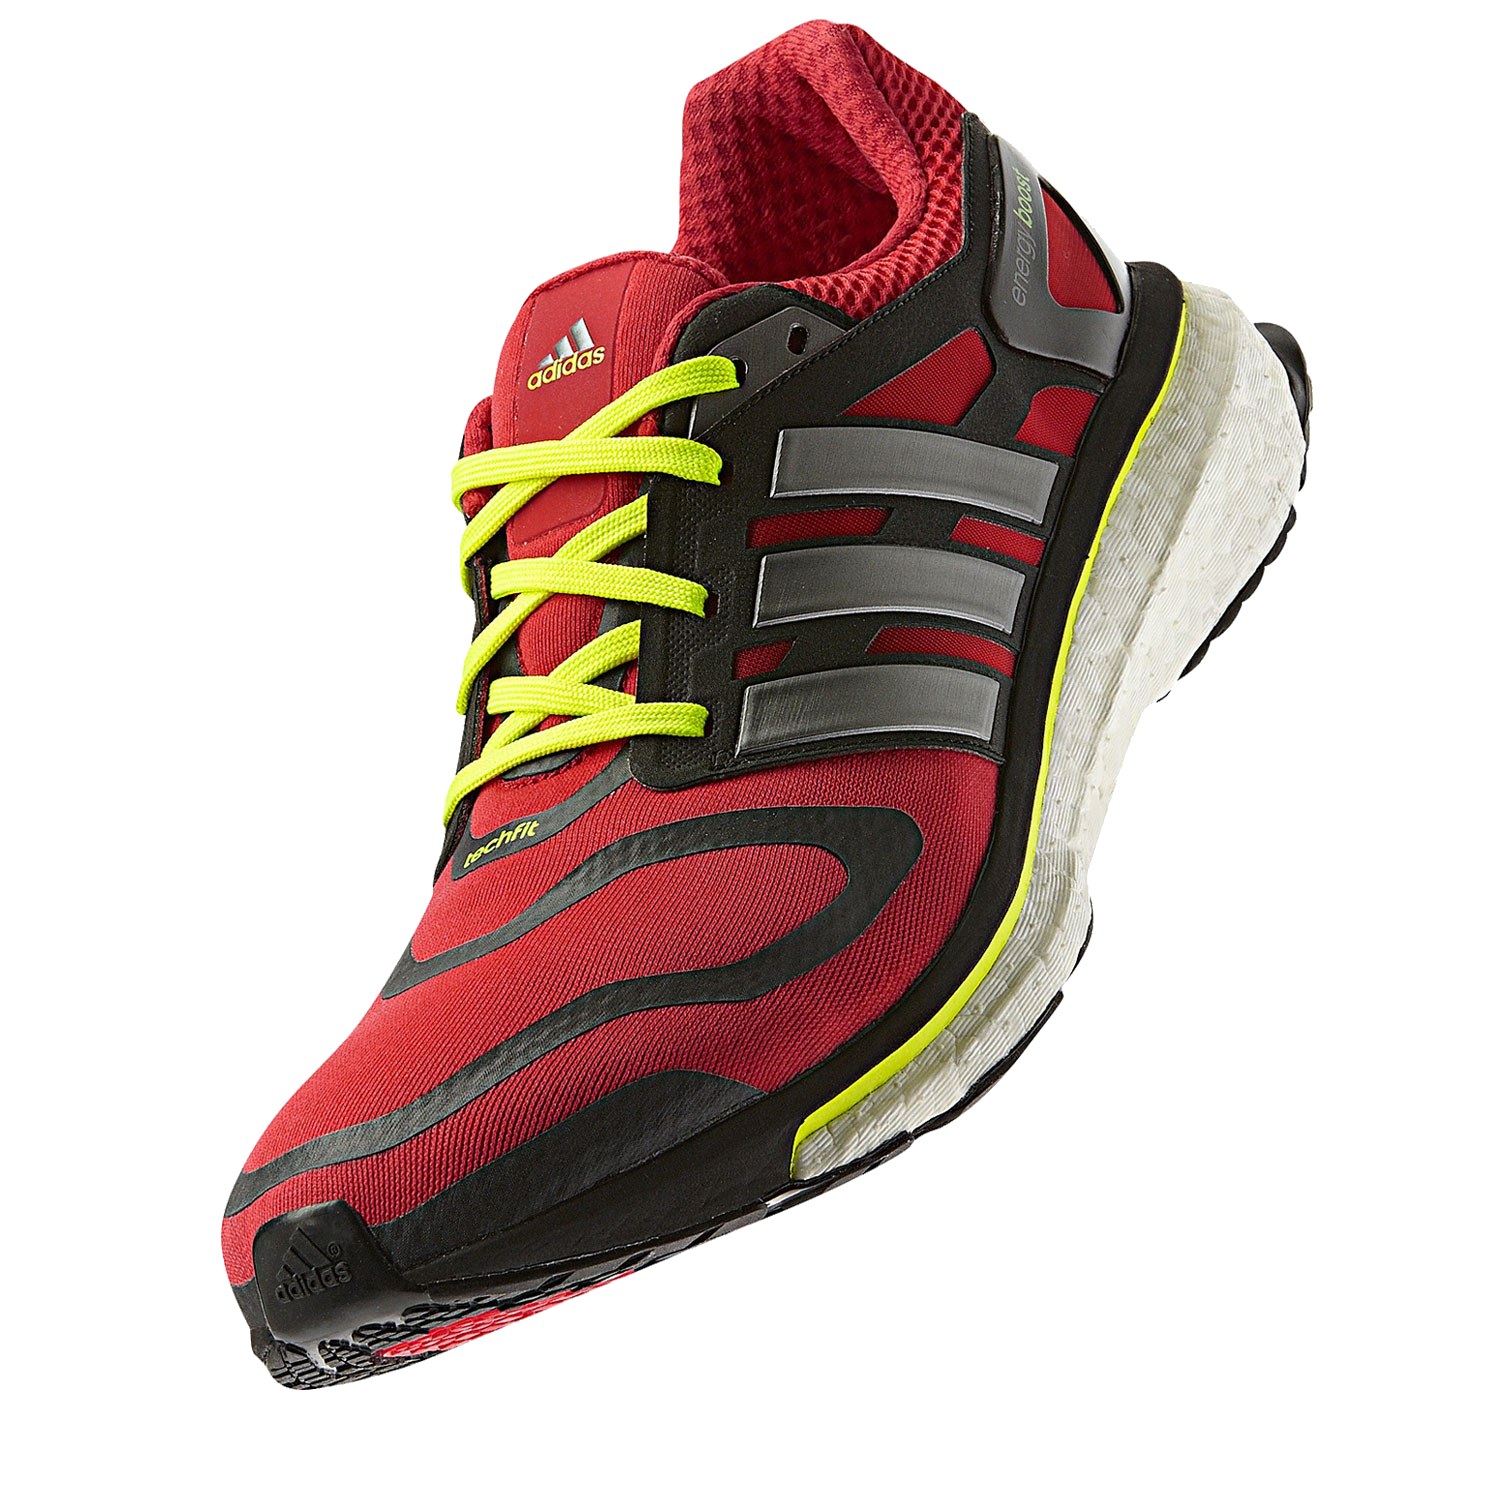 Adidas Shoes Png Picture PNG Image. Free Download PNG